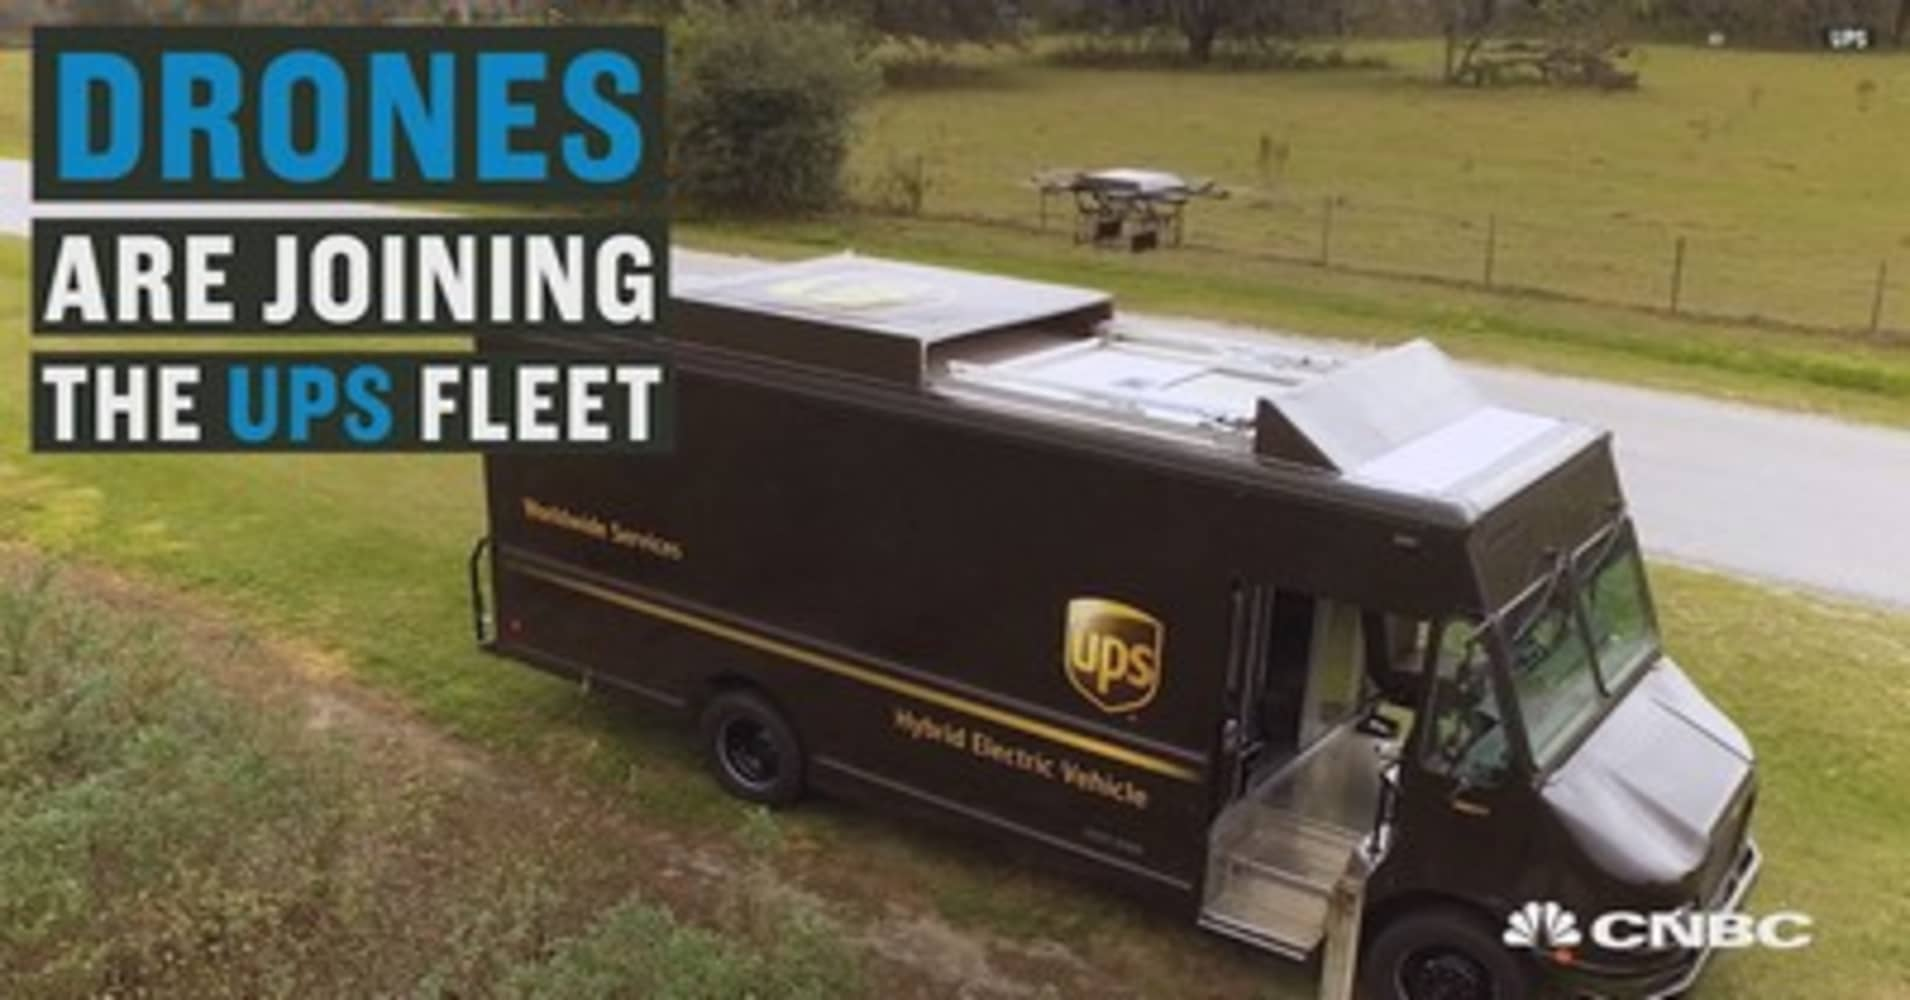 UPS Tests Drone Deliveries Via High Tech Truck